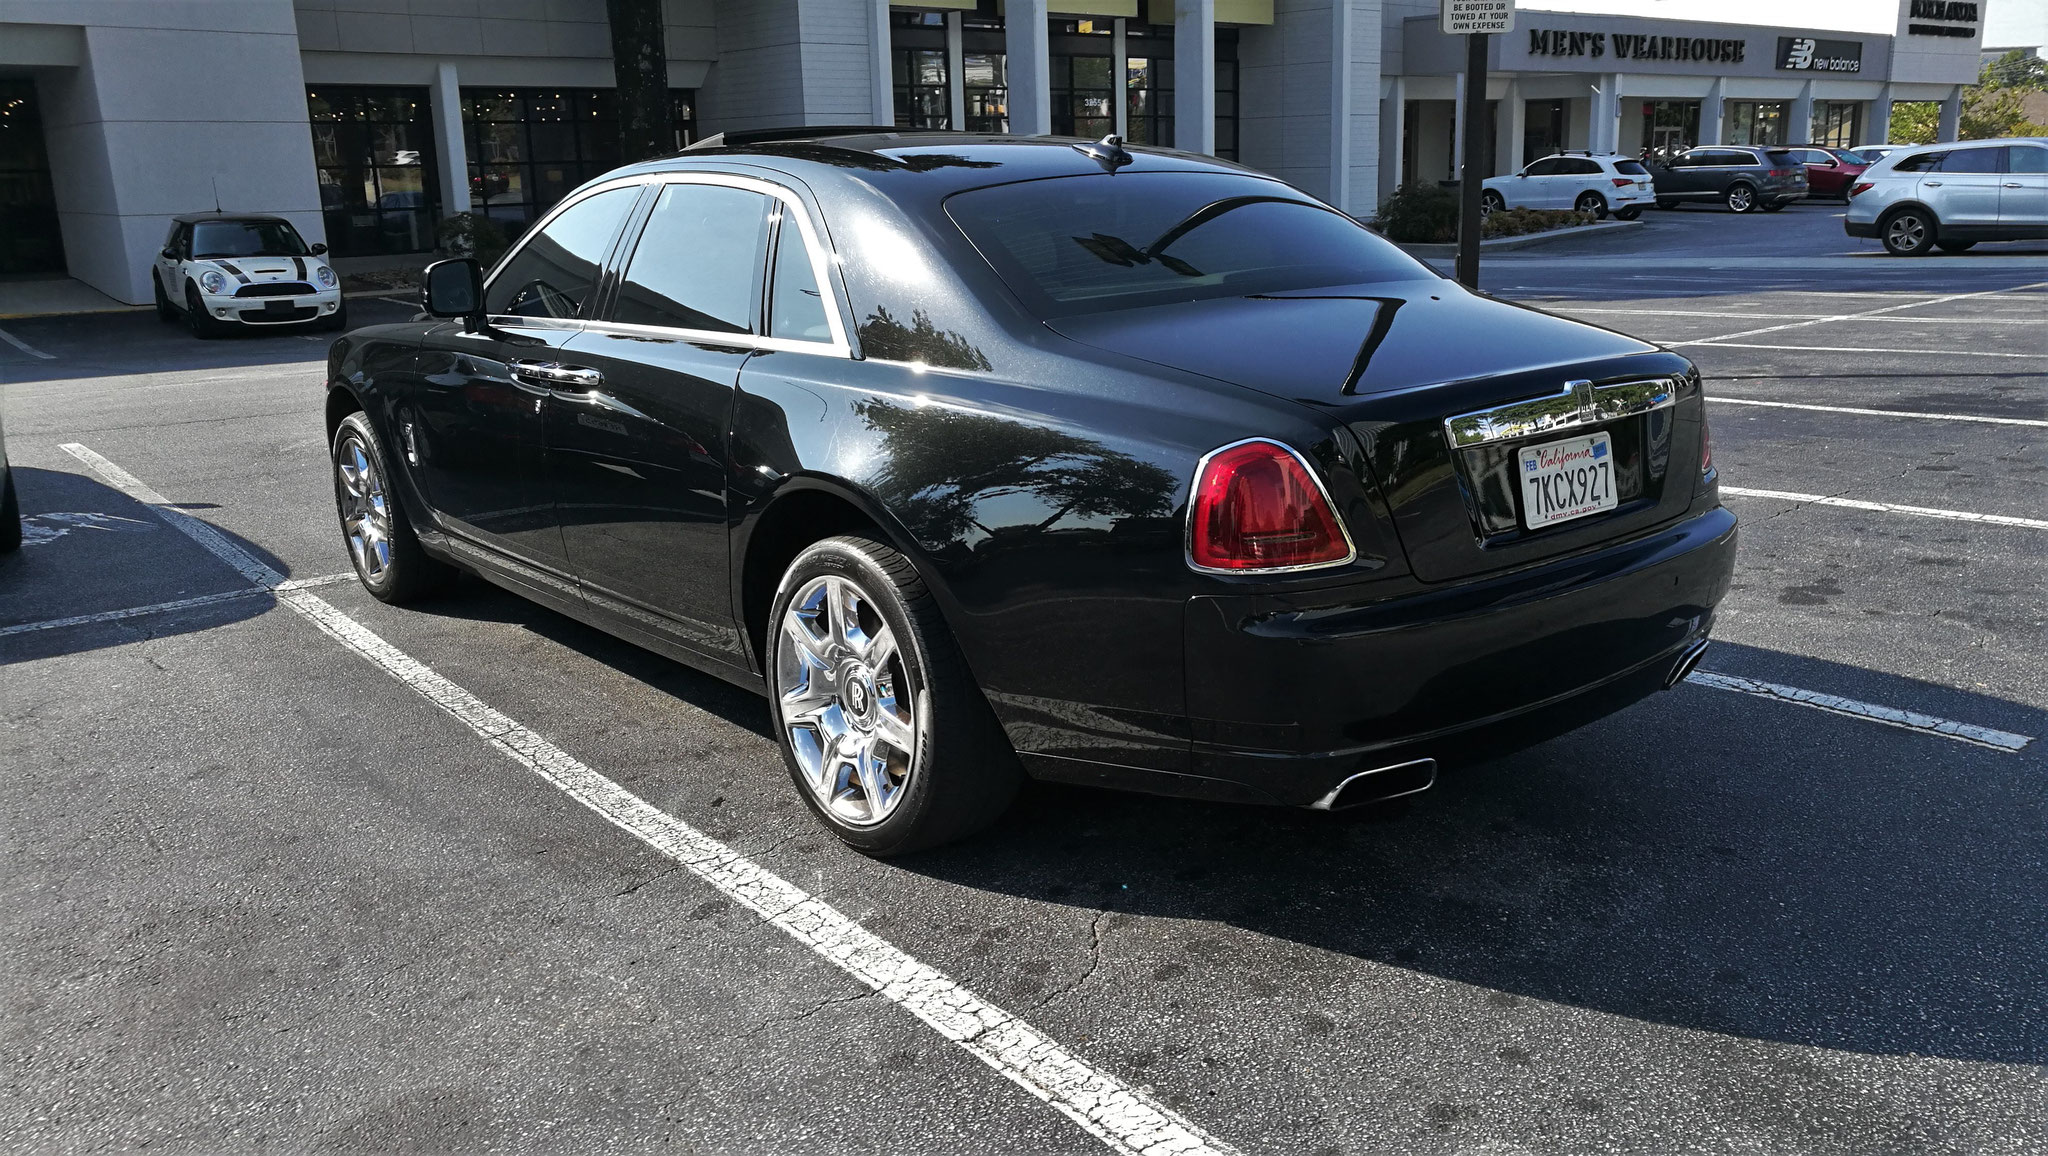 Rolls Royce Ghost Series II - 7KCX927 (USA)